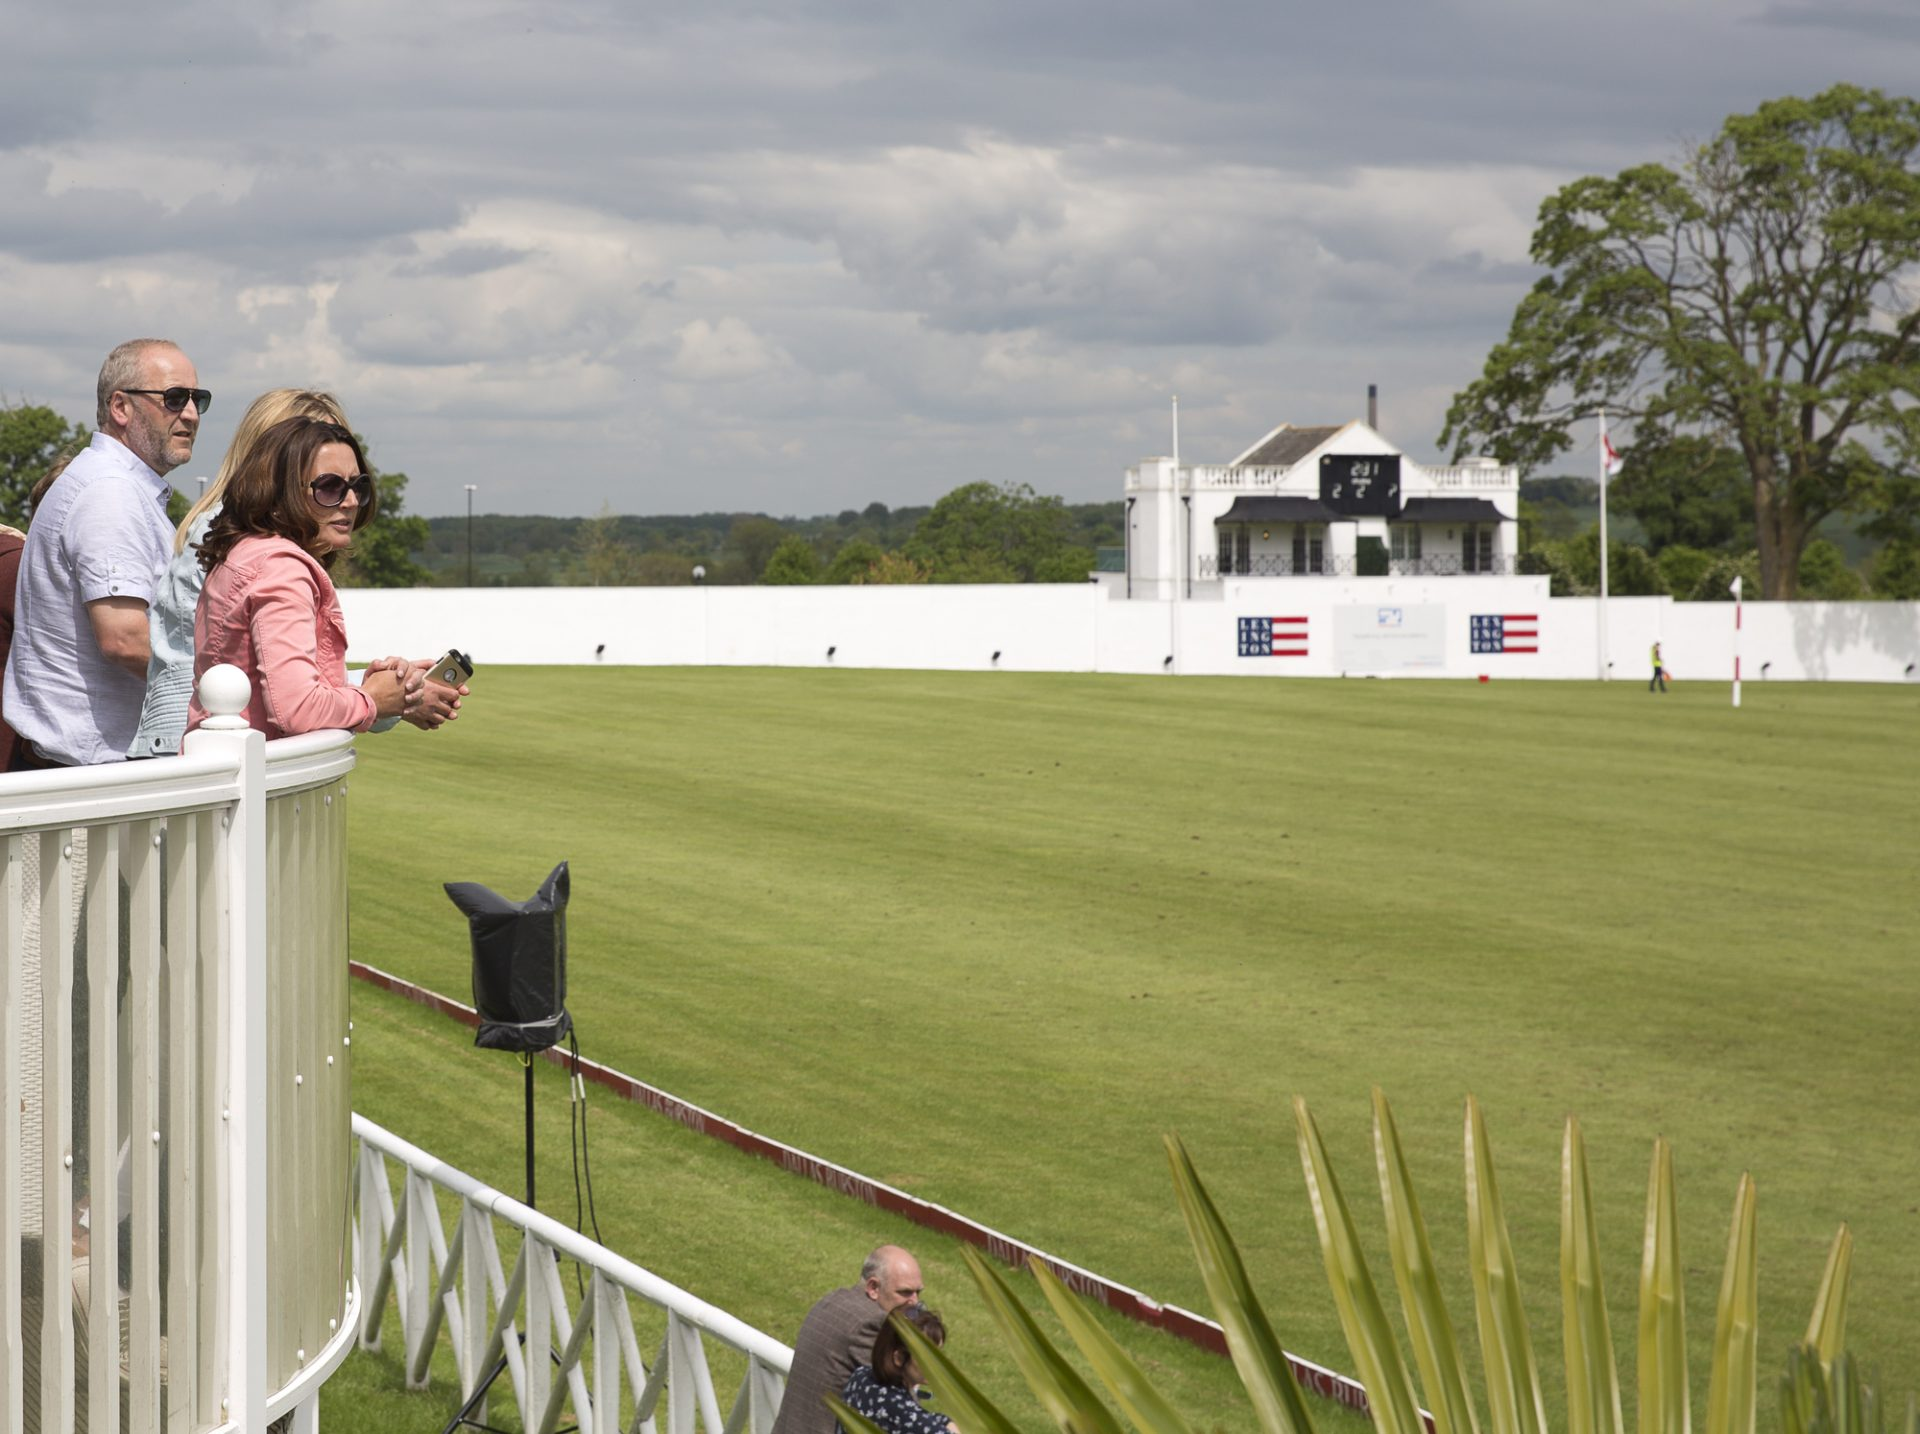 Dallas Burston Polo Club - View out to Polo Game